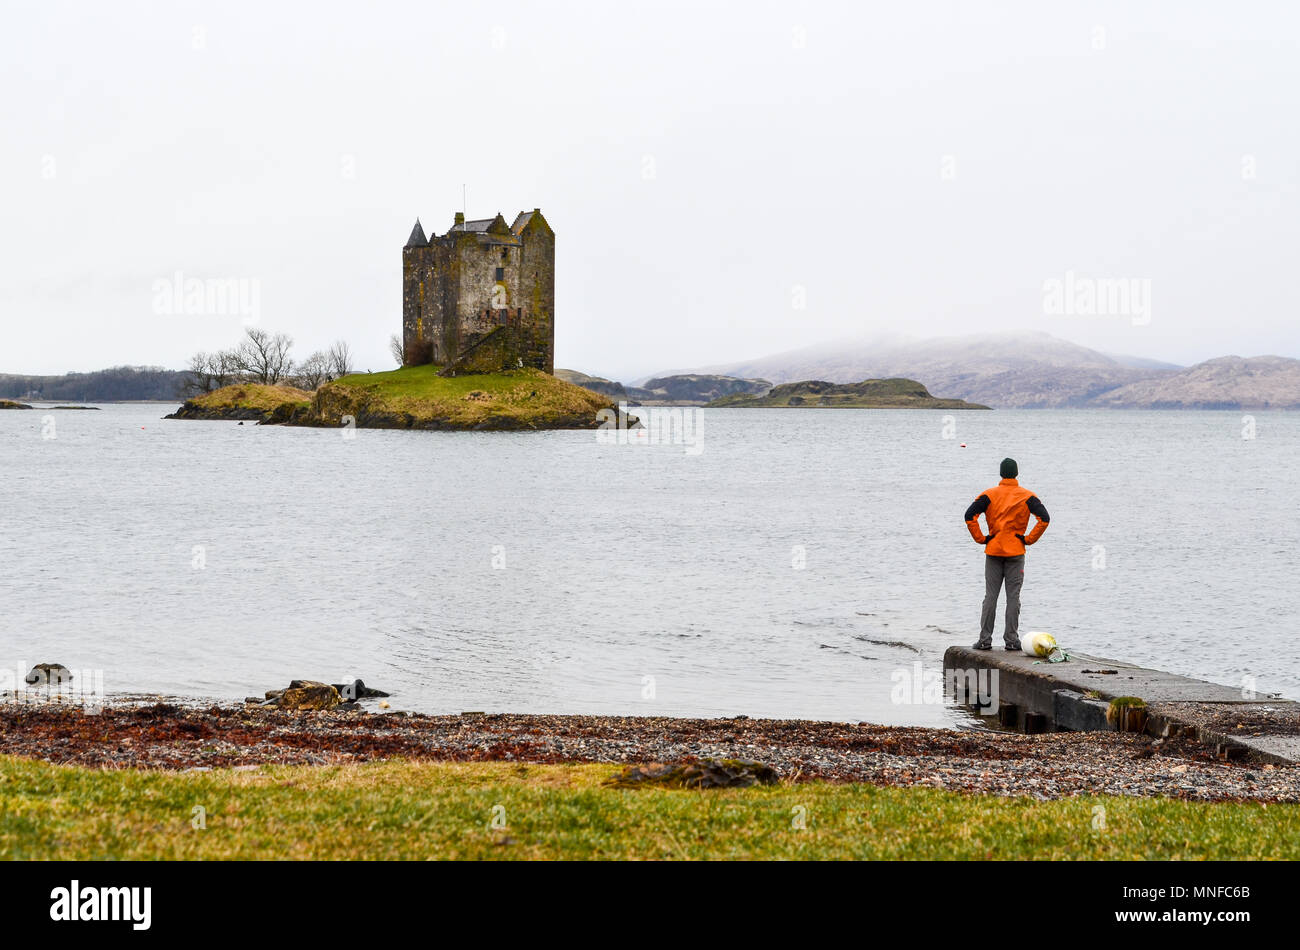 Man standing by a loch and looking at Castle Stalker, Scotland - Stock Image